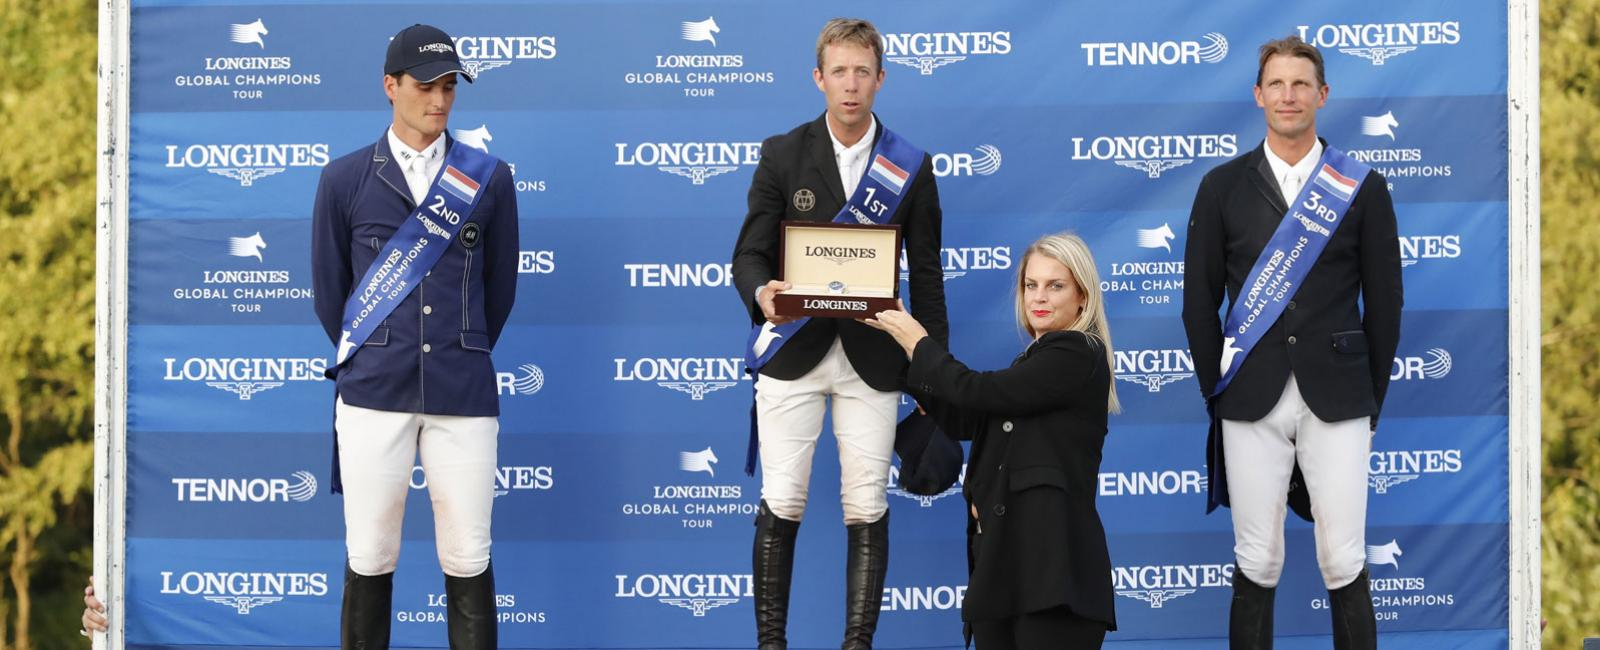 Longines Global Champions Tour di Valkenswaard; Jumping; 2019